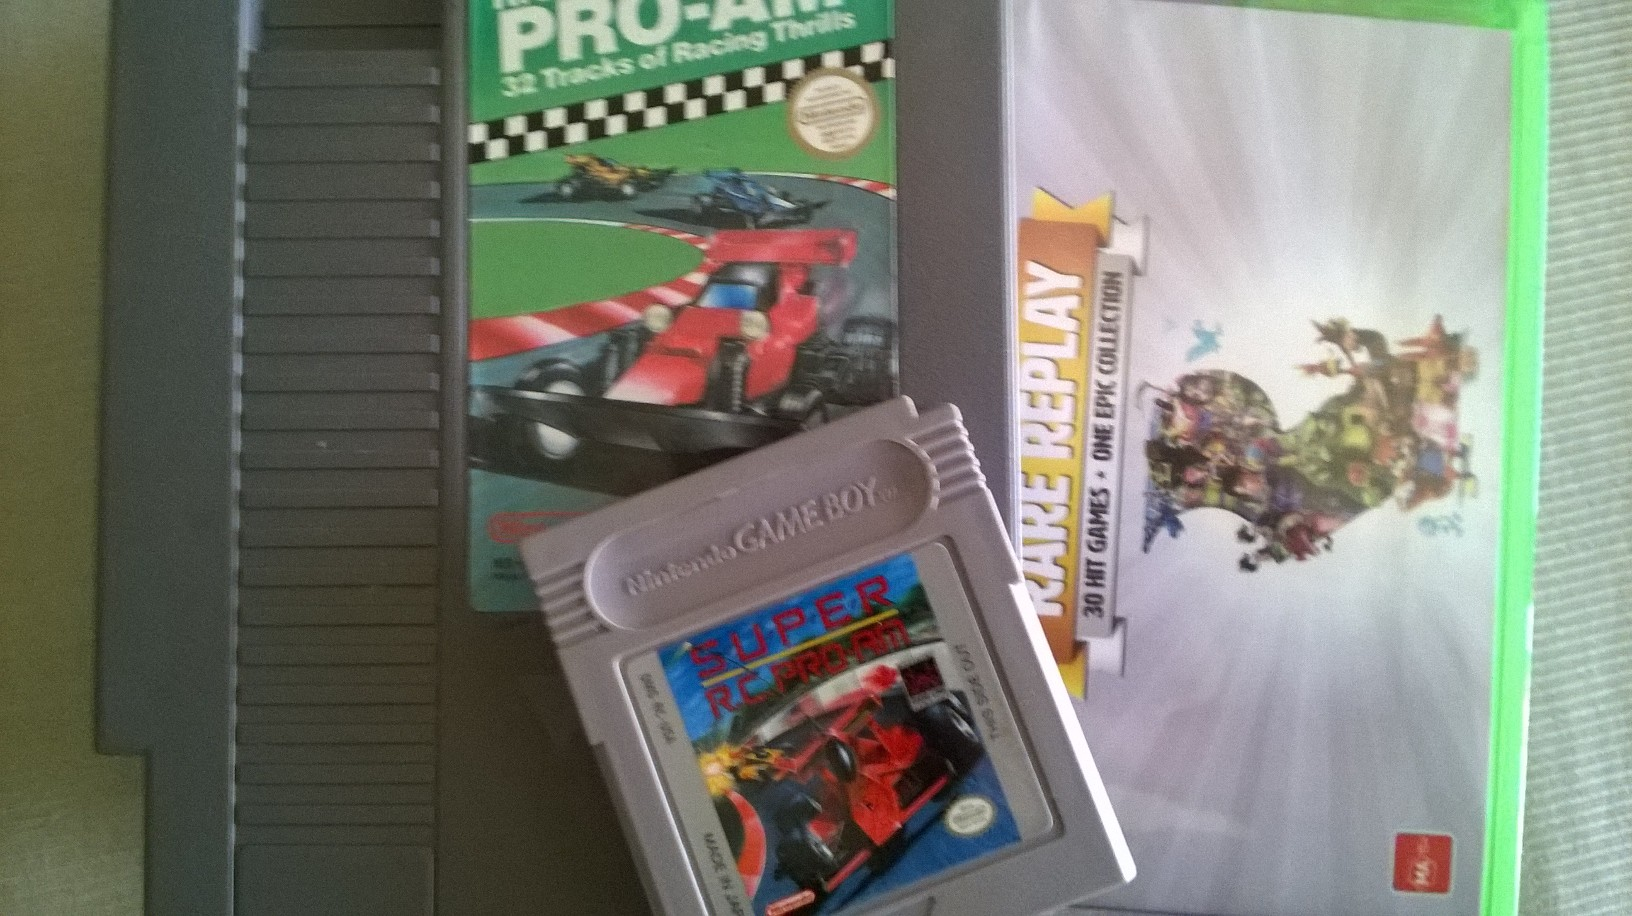 For whatever reason I always thought R.C. PRO-AM was a NAMCO game.